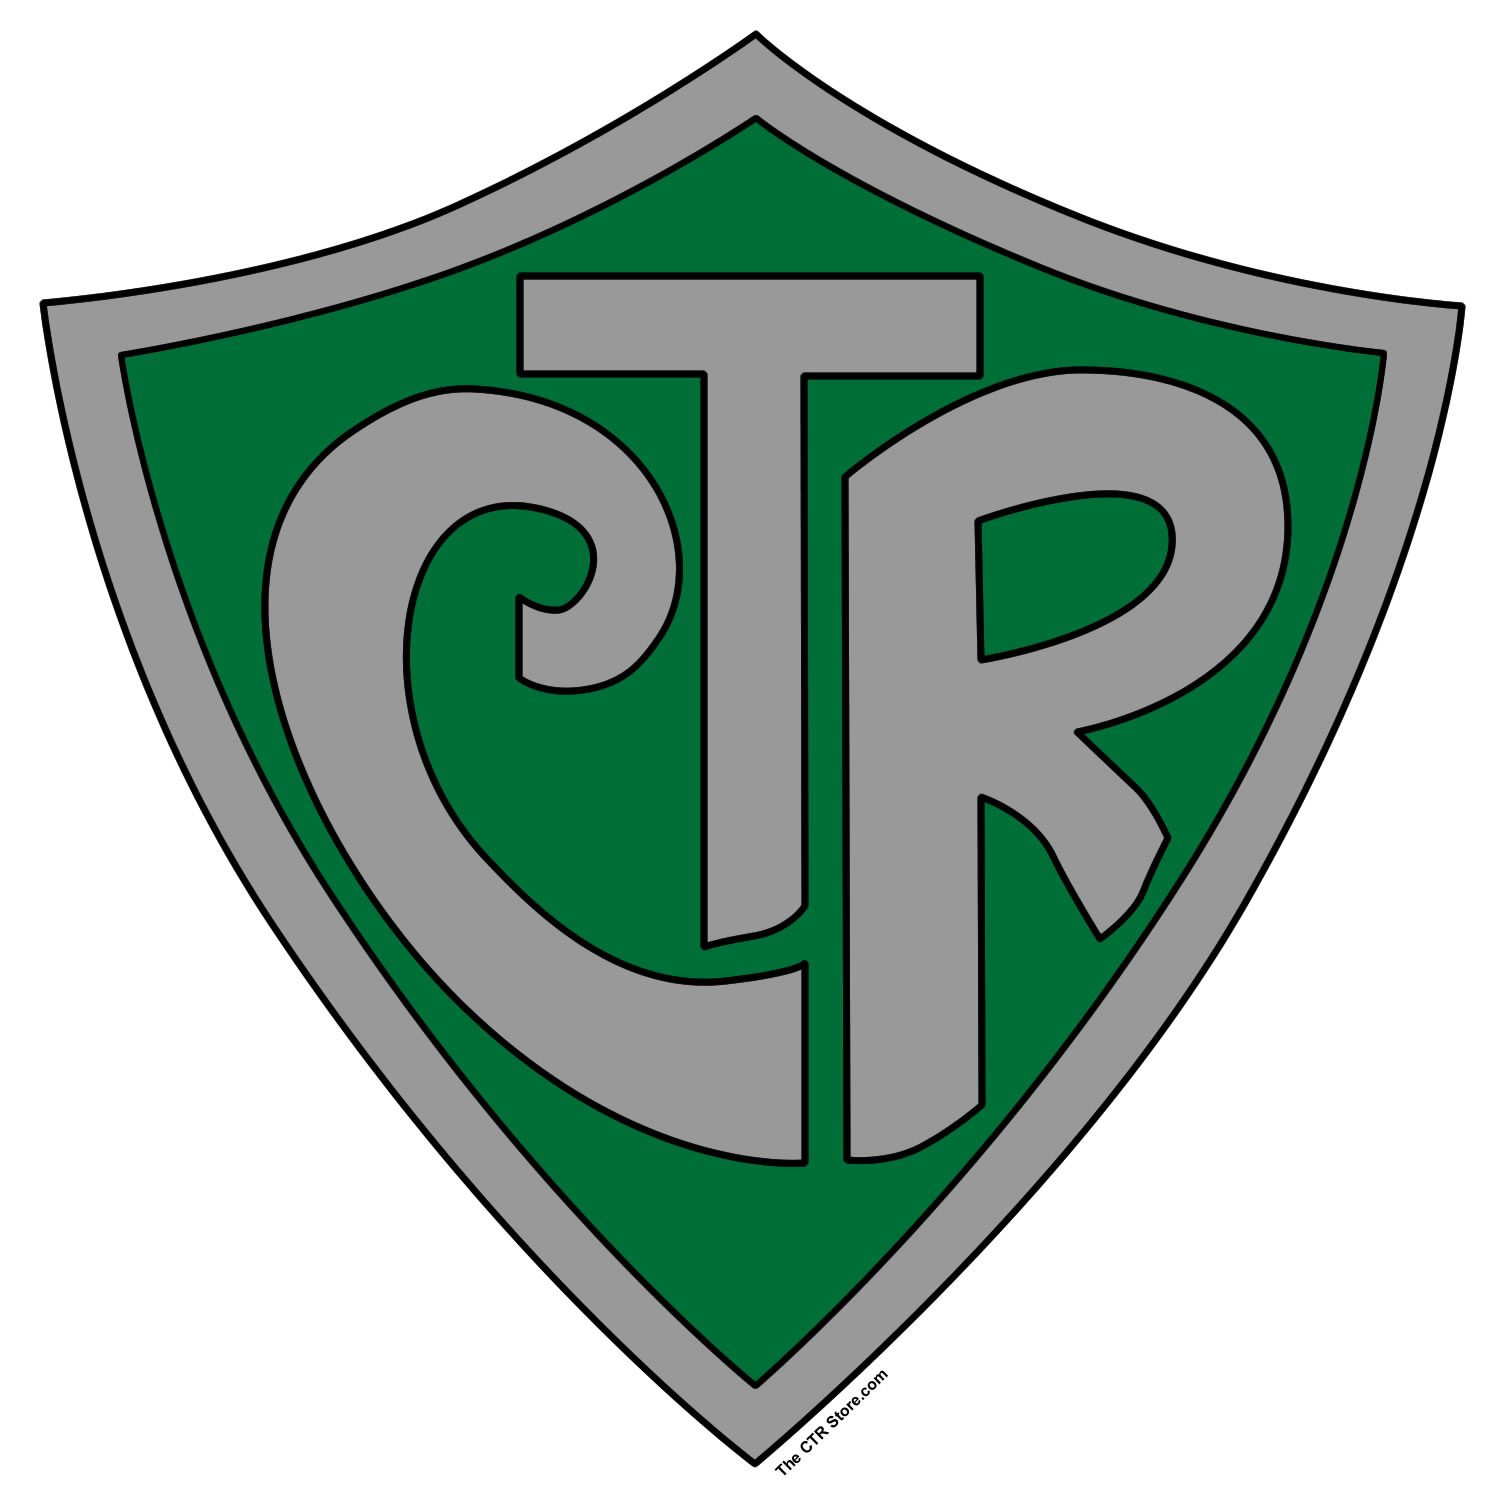 Ctr Clipart Cliparts Co